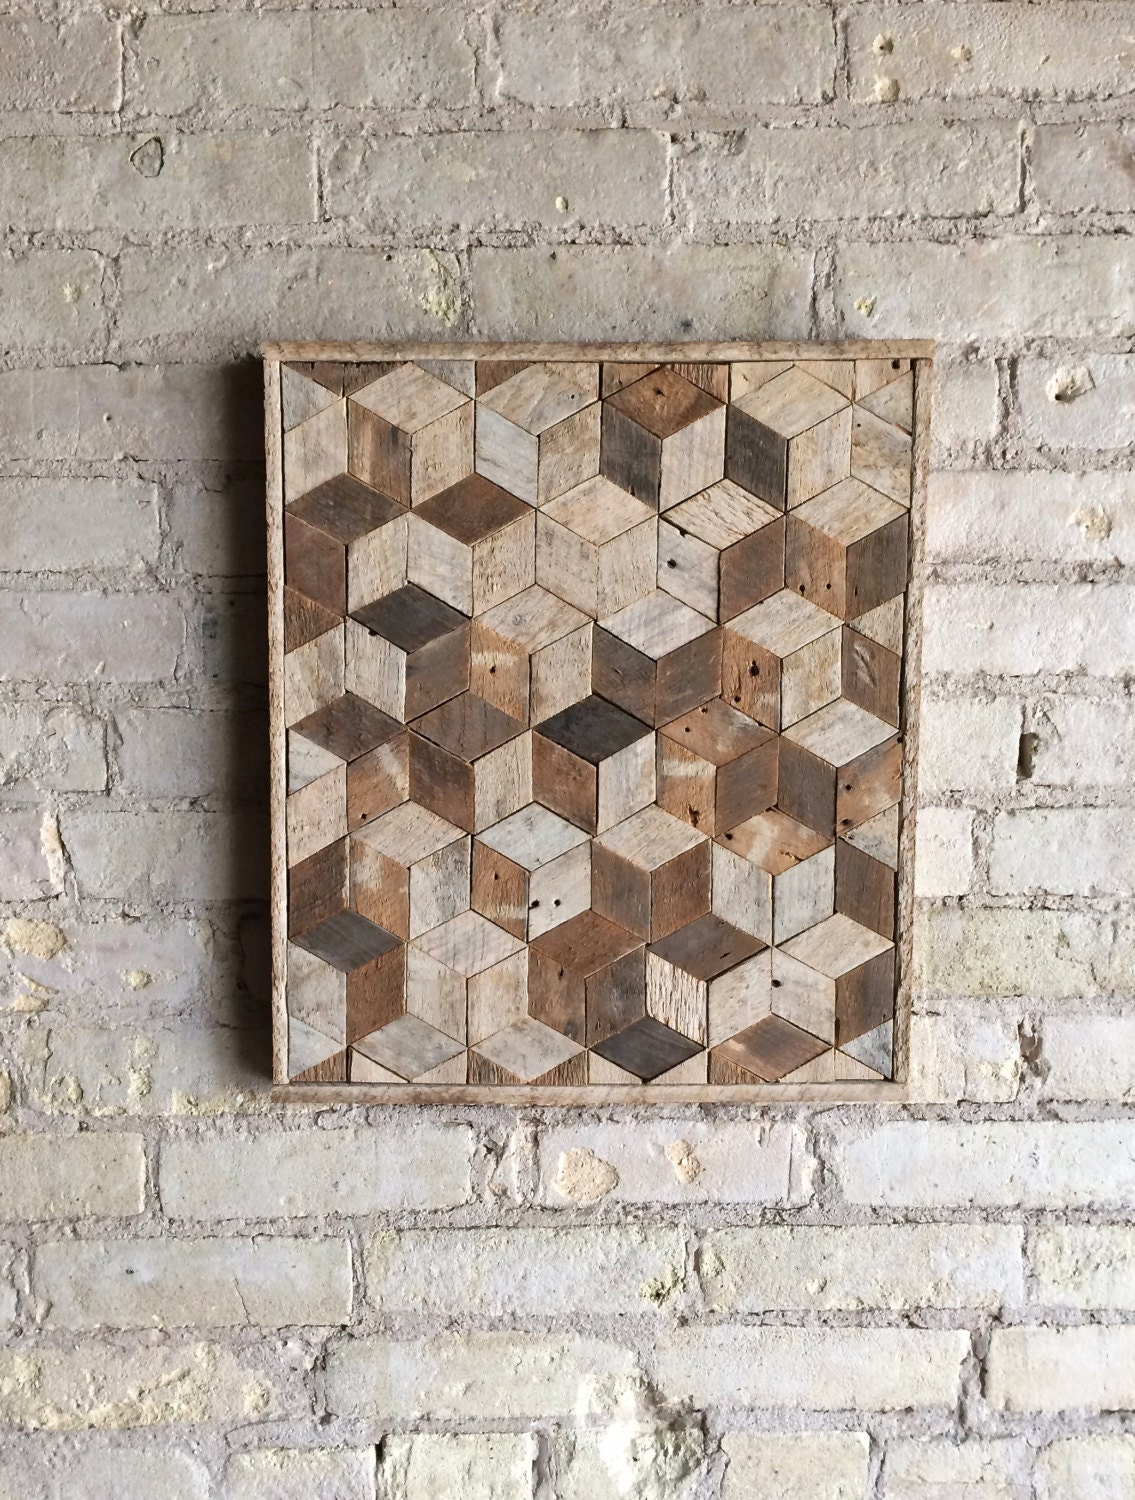 Reclaimed wood wall art decor pattern lath 3d cube for Wood wall art